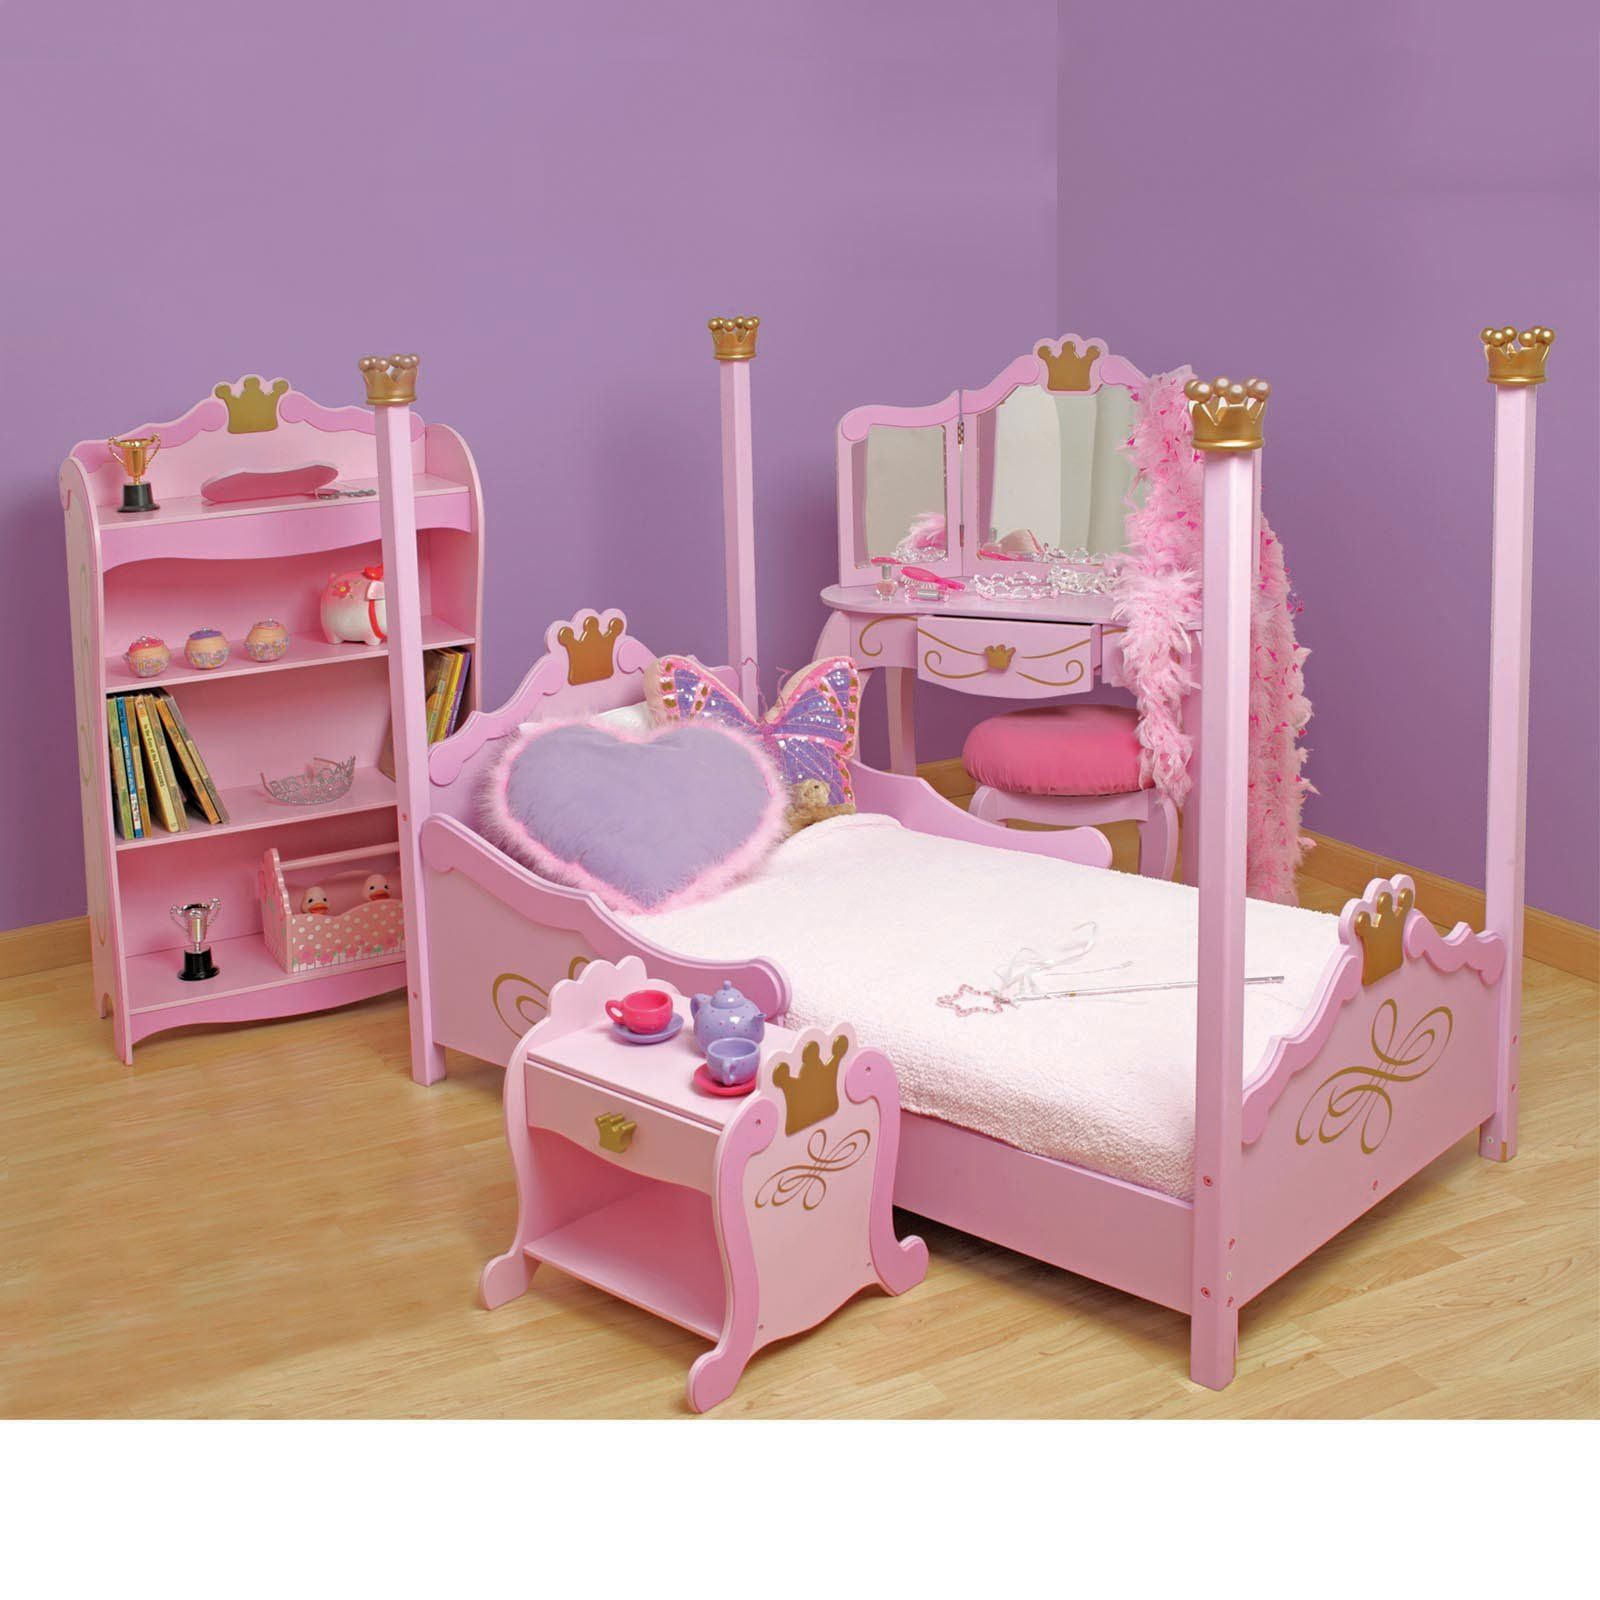 Girly Bedroom Furniture Uk: Cute Toddler Beds For Girls